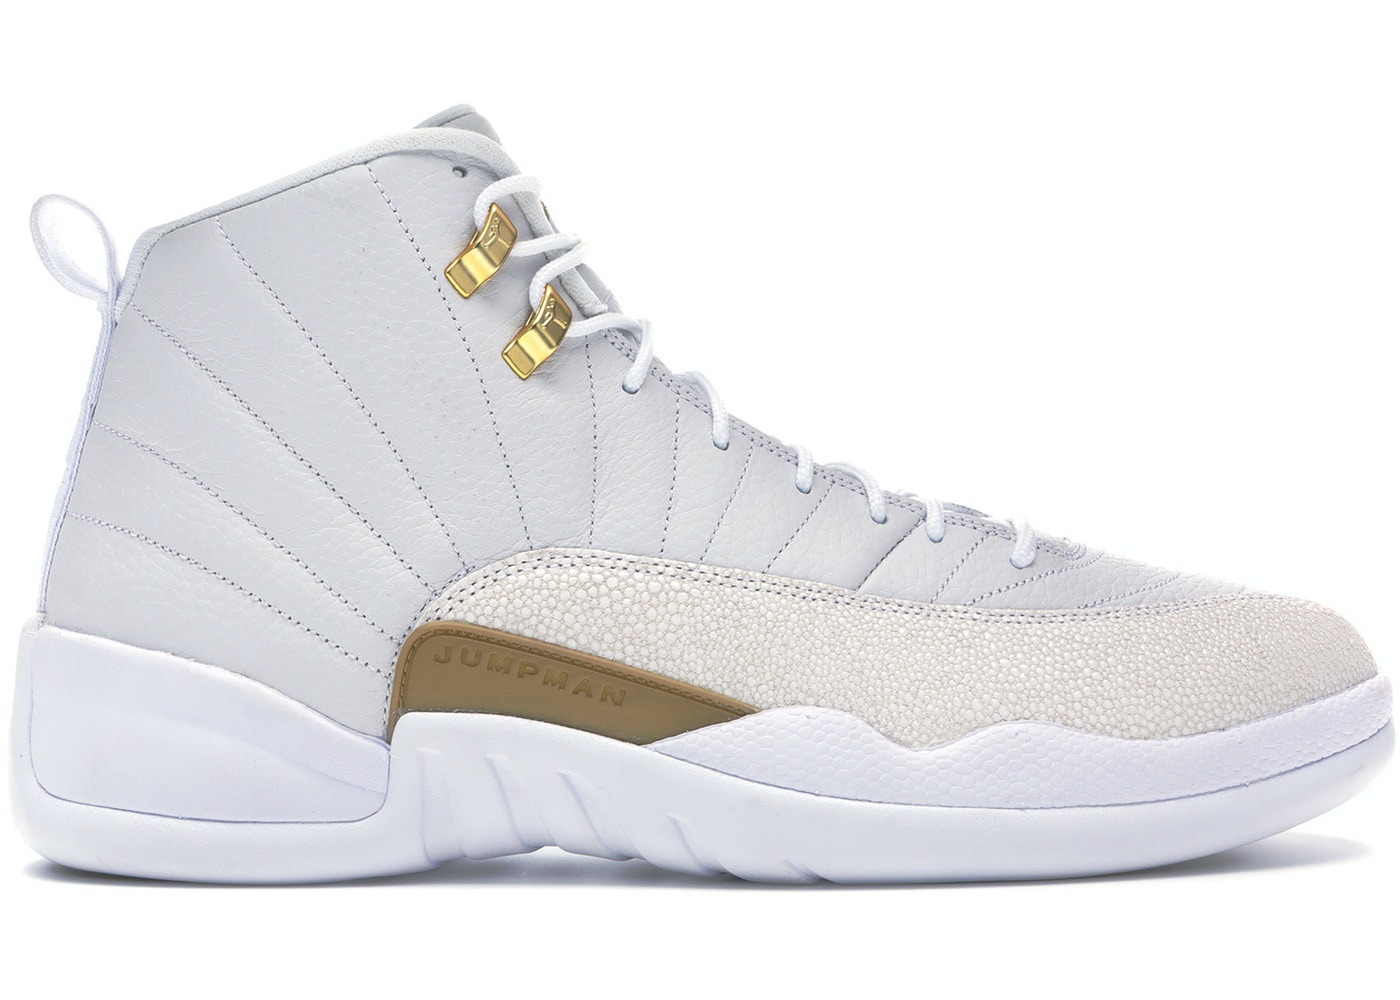 e45fee0c90861f Jordan 12 Retro OVO White - 873864-102